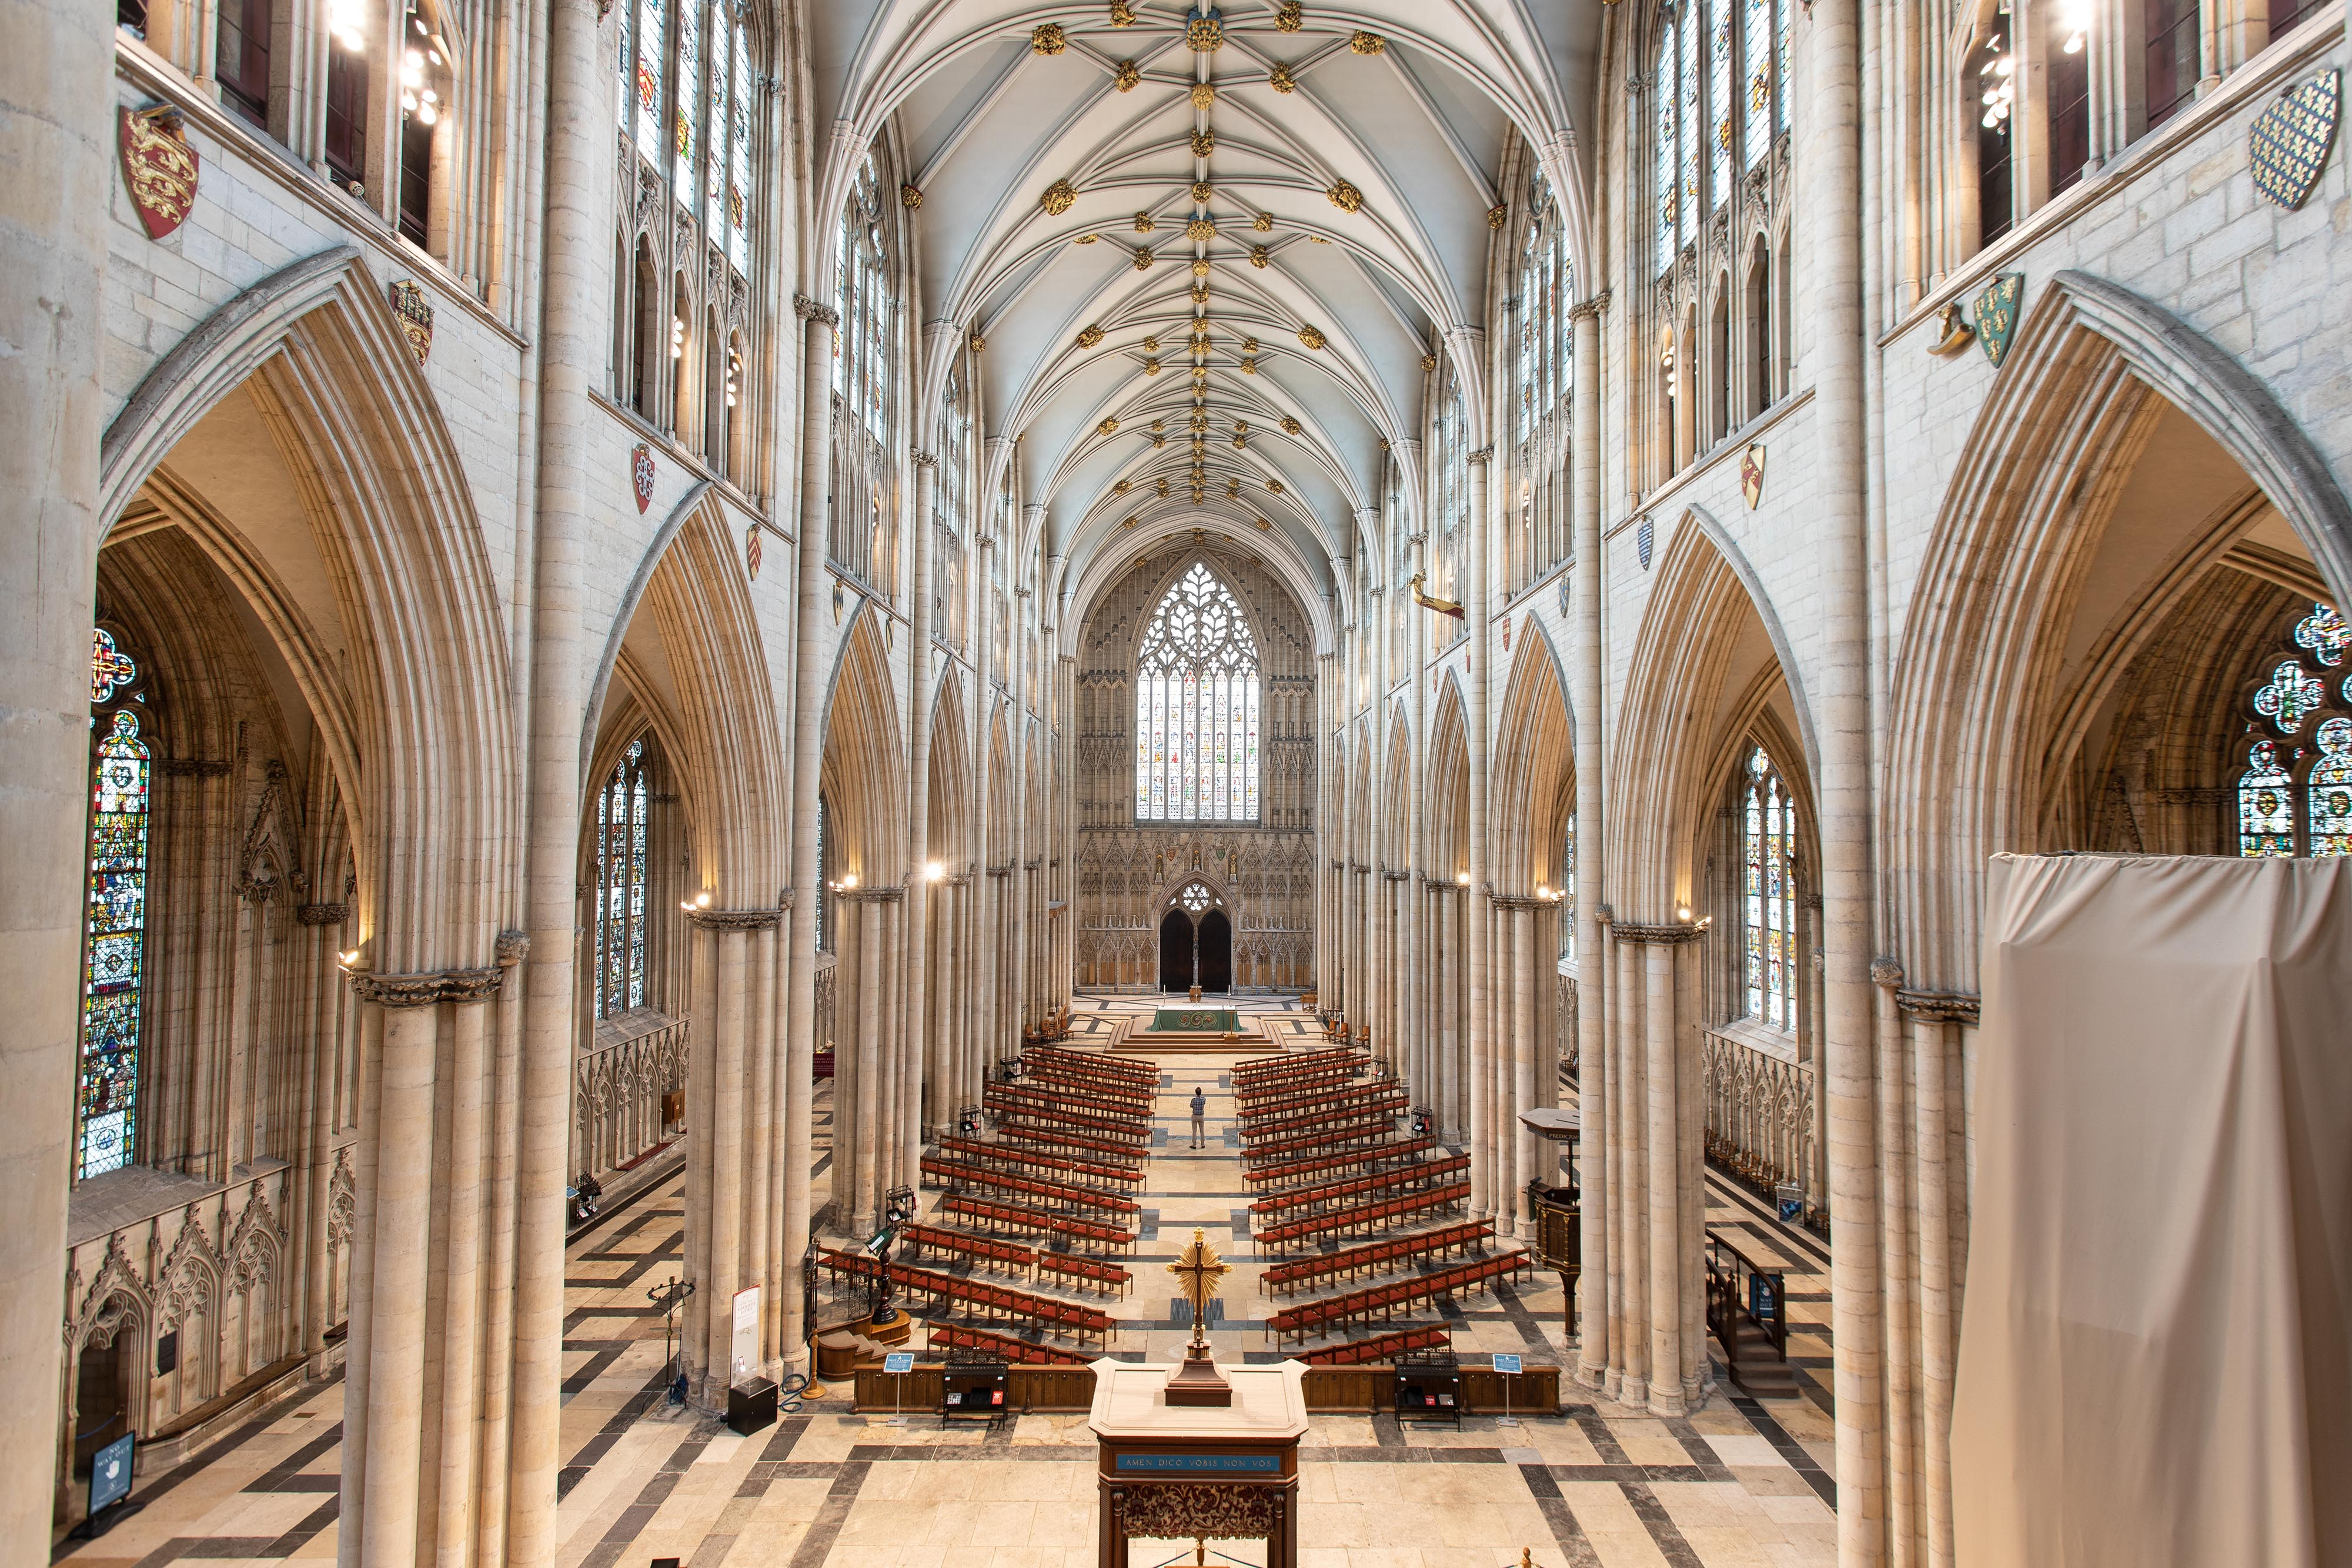 Well-known conservation architect to oversee York Minster